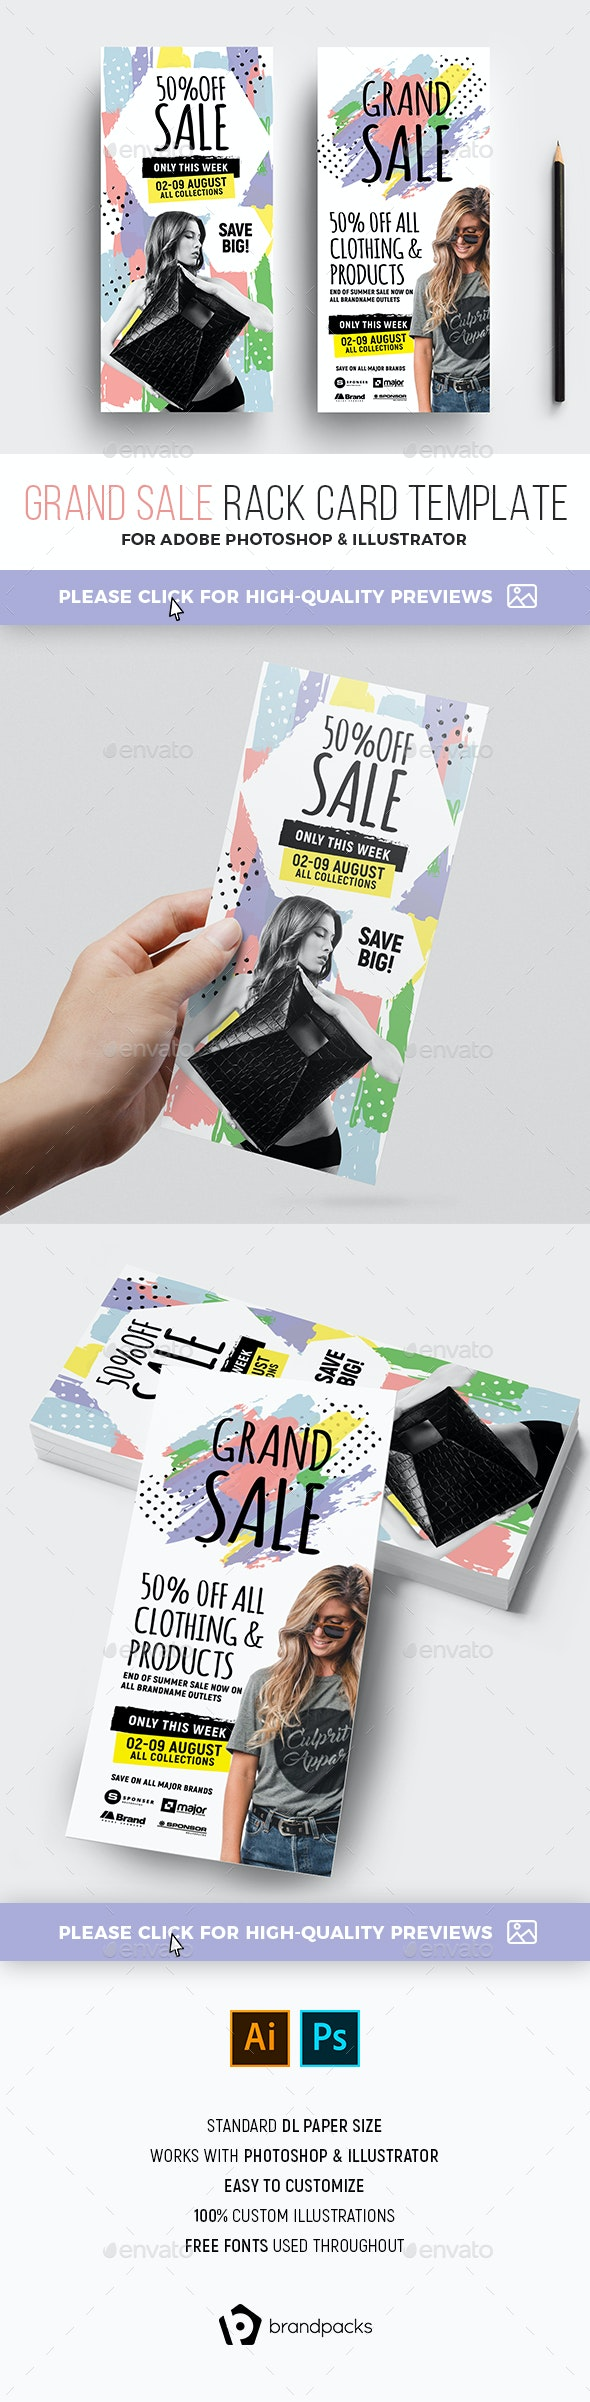 DL Grand Sale Rack Card Template - Commerce Flyers